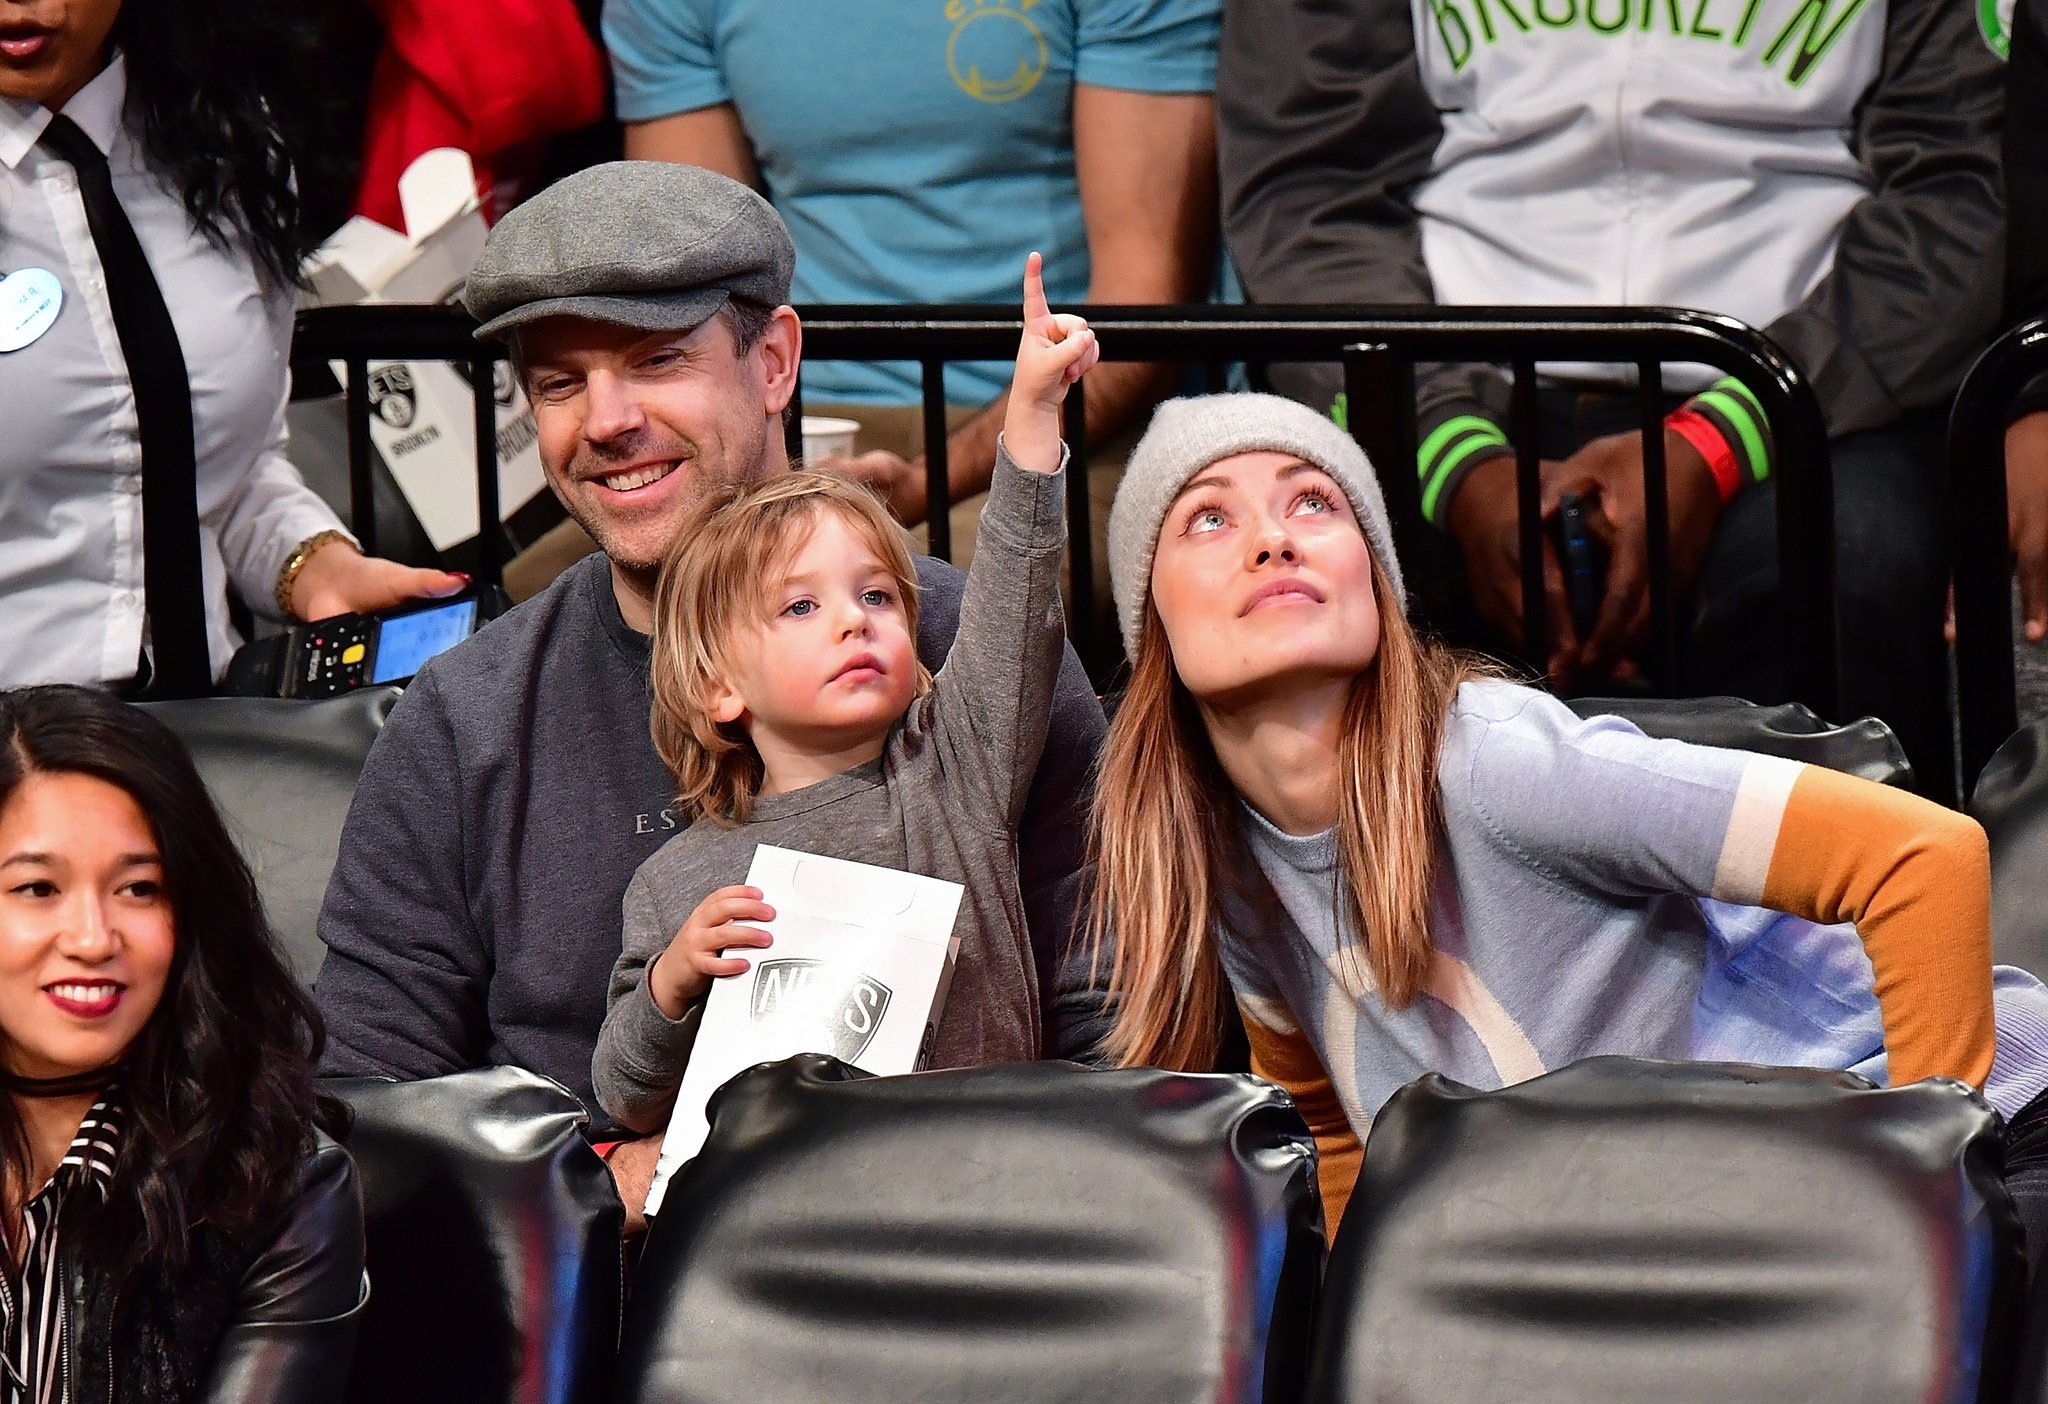 Olivia Wilde and Jason Sudeikis took their son Otis to a Nets game and this family is just too cute